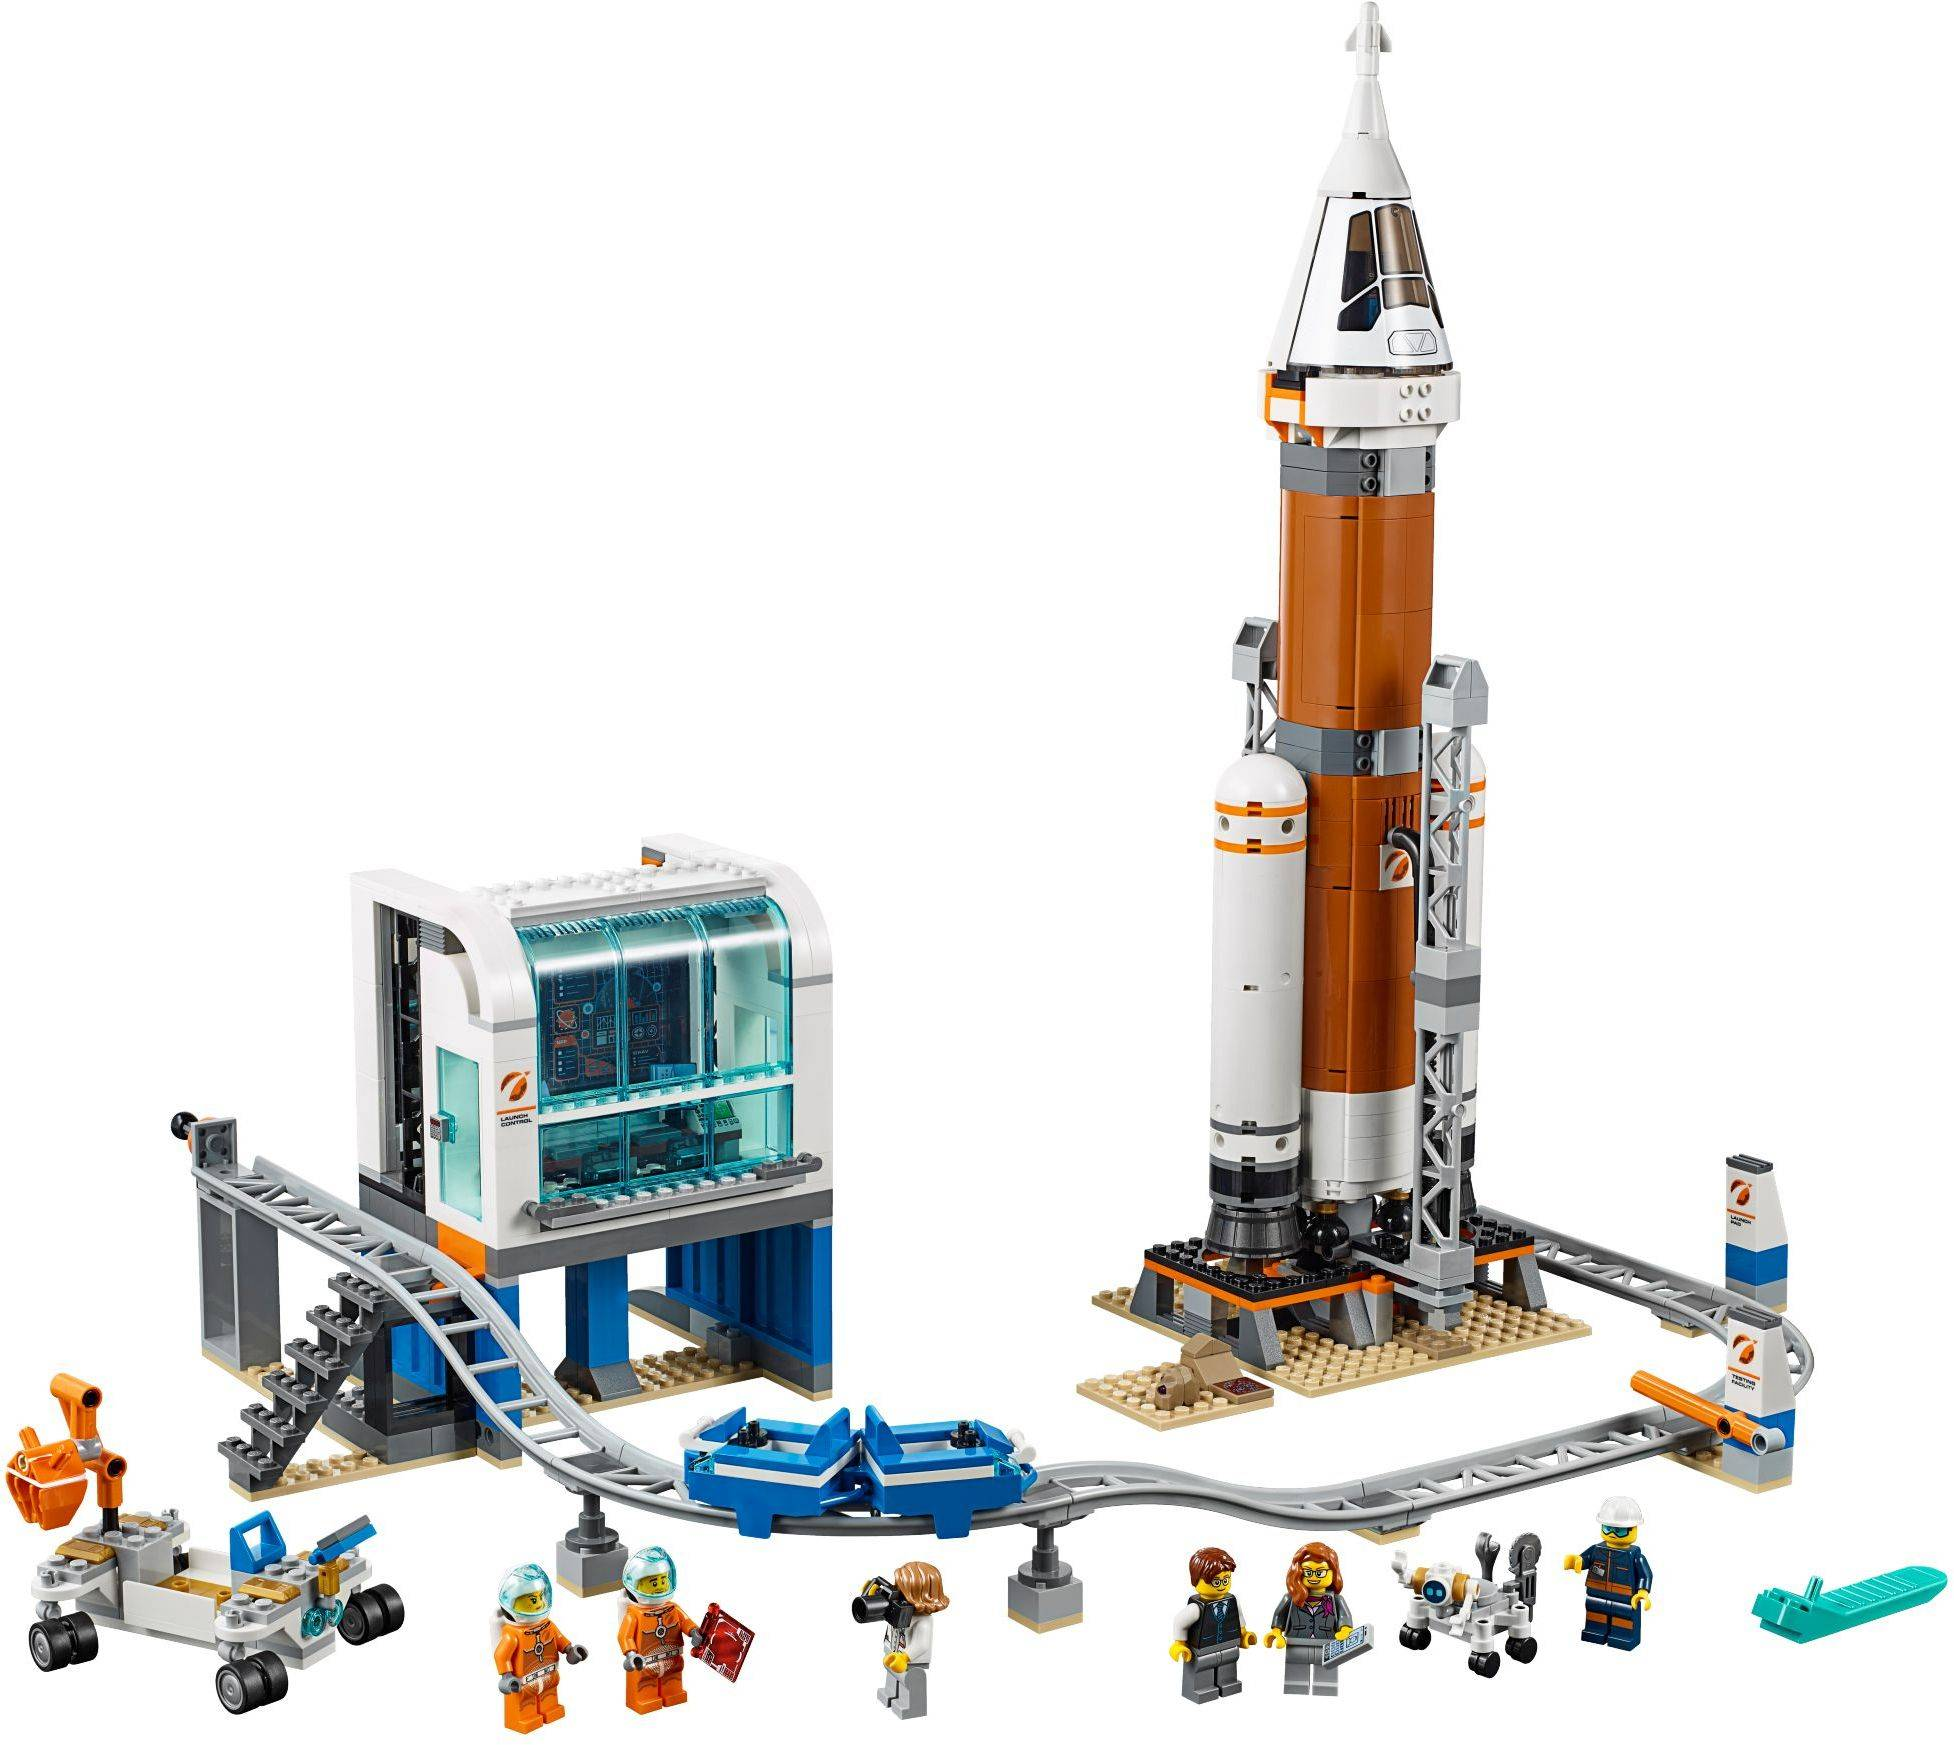 Lego 60228 City Deep Space Rocket and Launch Control ...